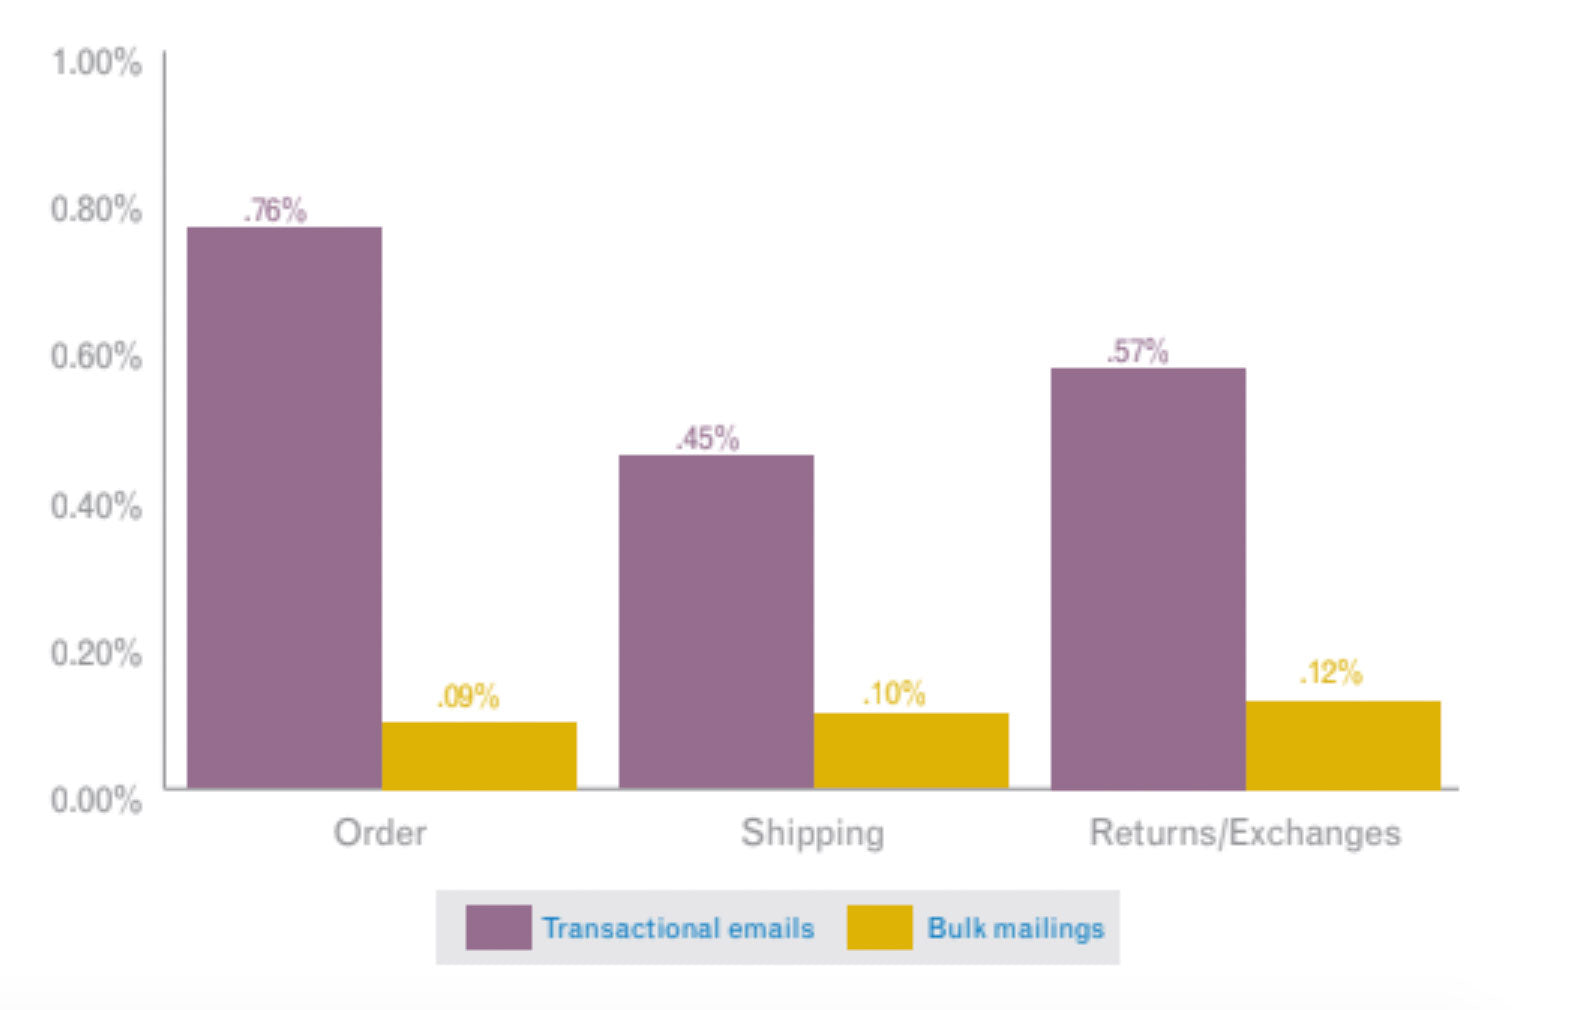 Shopify transactional email conversion rate differences